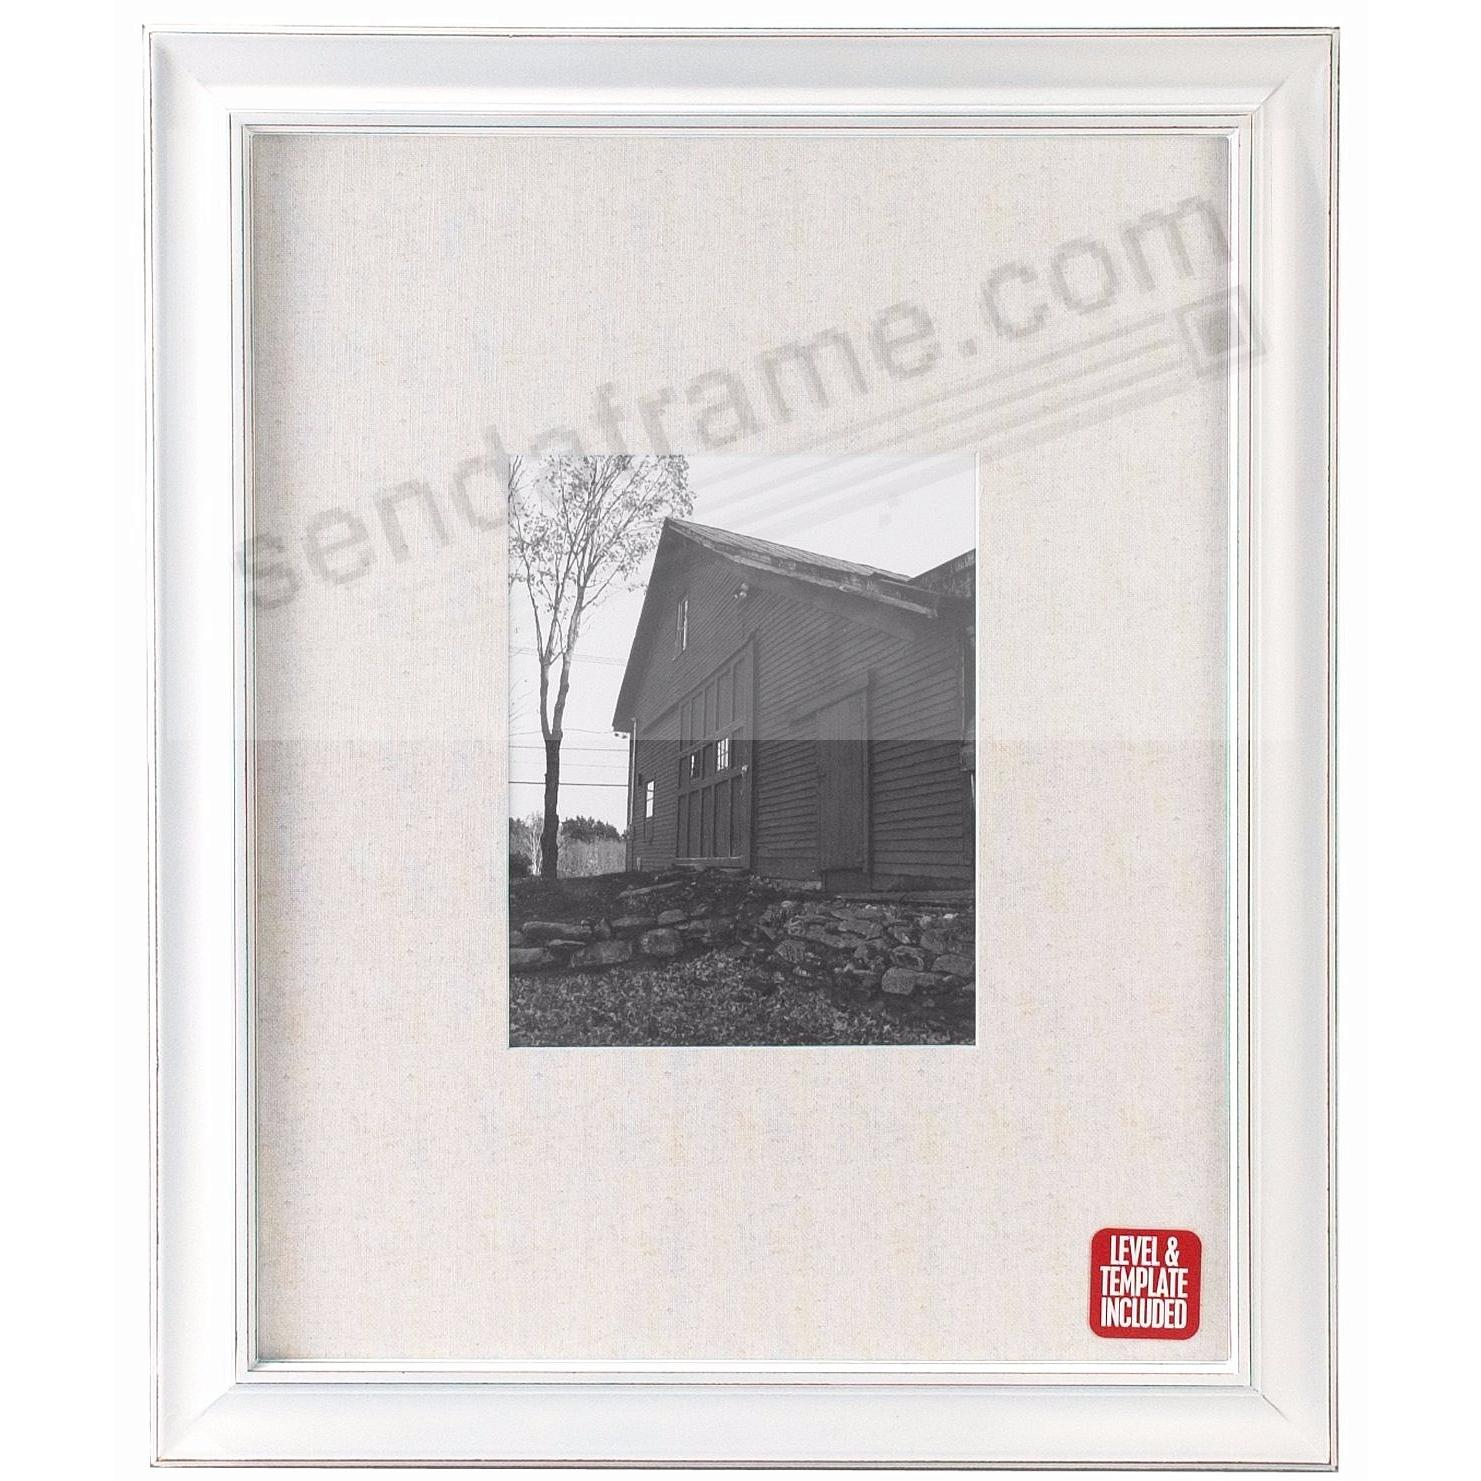 BARNSIDE WHITE 16x20/8x10 Matted Frame by Malden® - Picture Frames ...